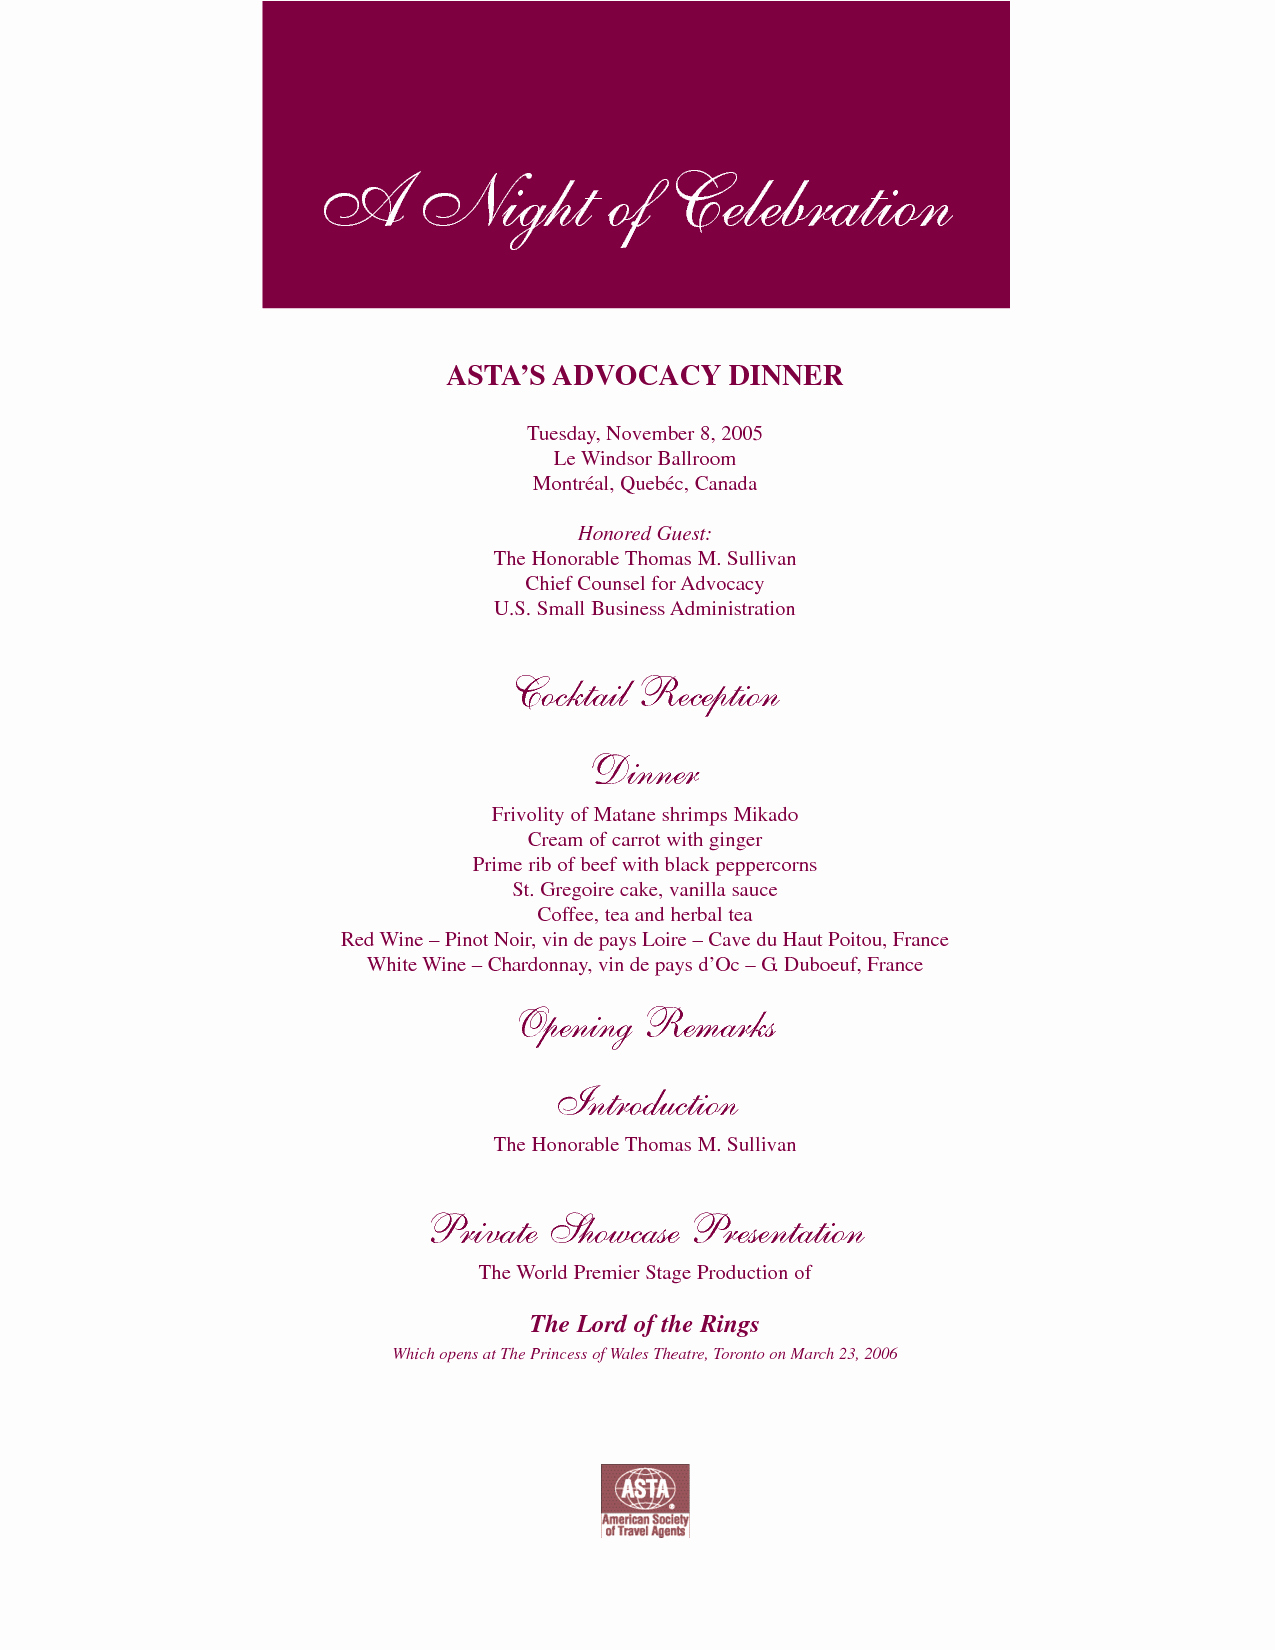 Retirement Party Program Samples Elegant Best S Of Dinner Party Program Templates Sample